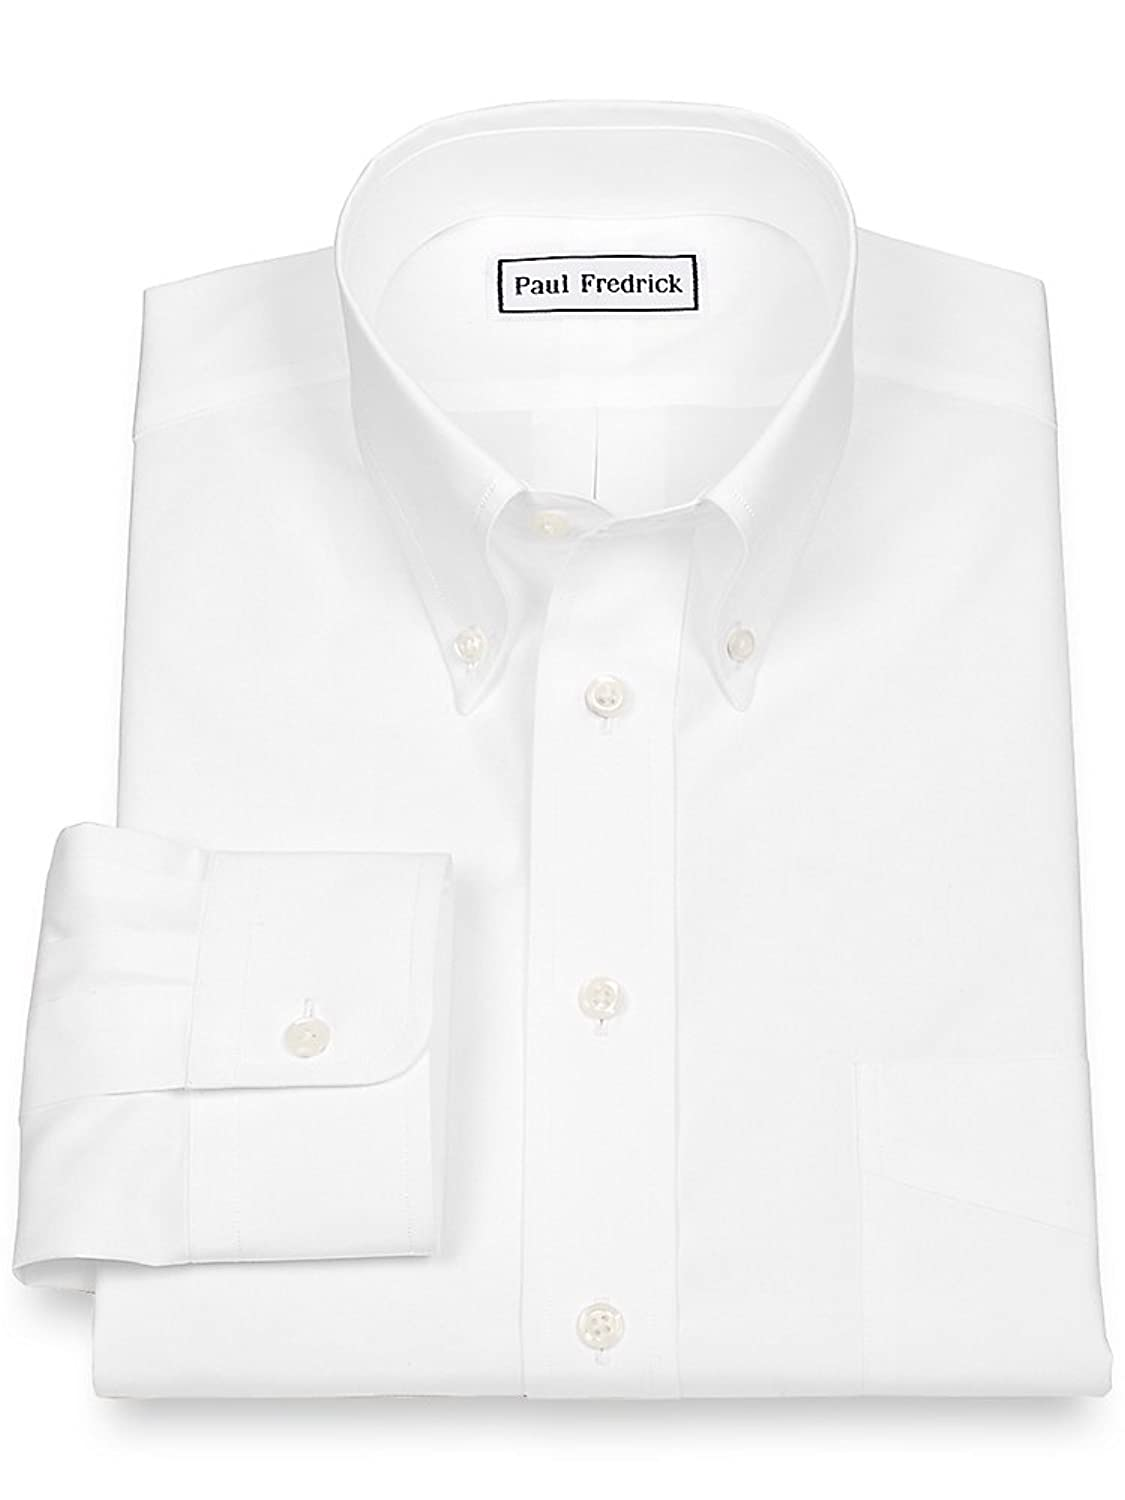 Paul Fredrick Men's 2-Ply Cotton Button Down Collar Button Cuff Dress Shirt